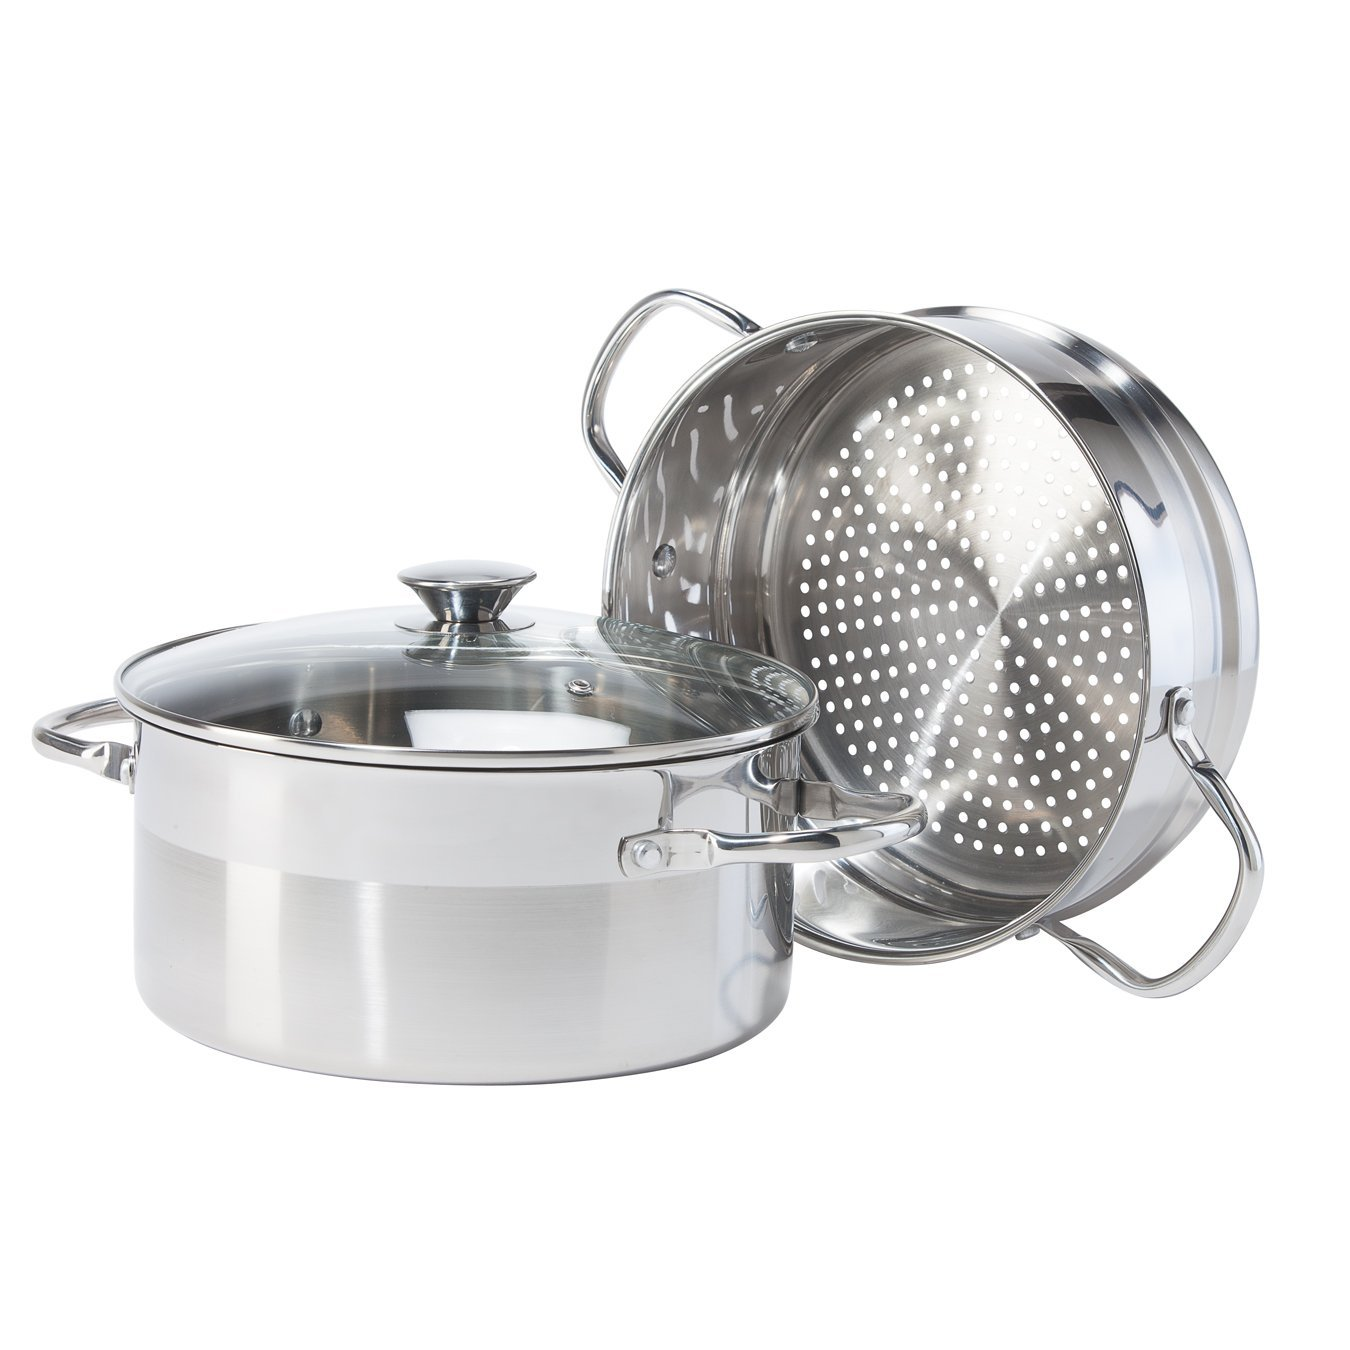 5634 3 Piece Stainless Steel Pro Vegetable Steamer Set, 5 quart, Silver, High quality stainless steel By Oggi